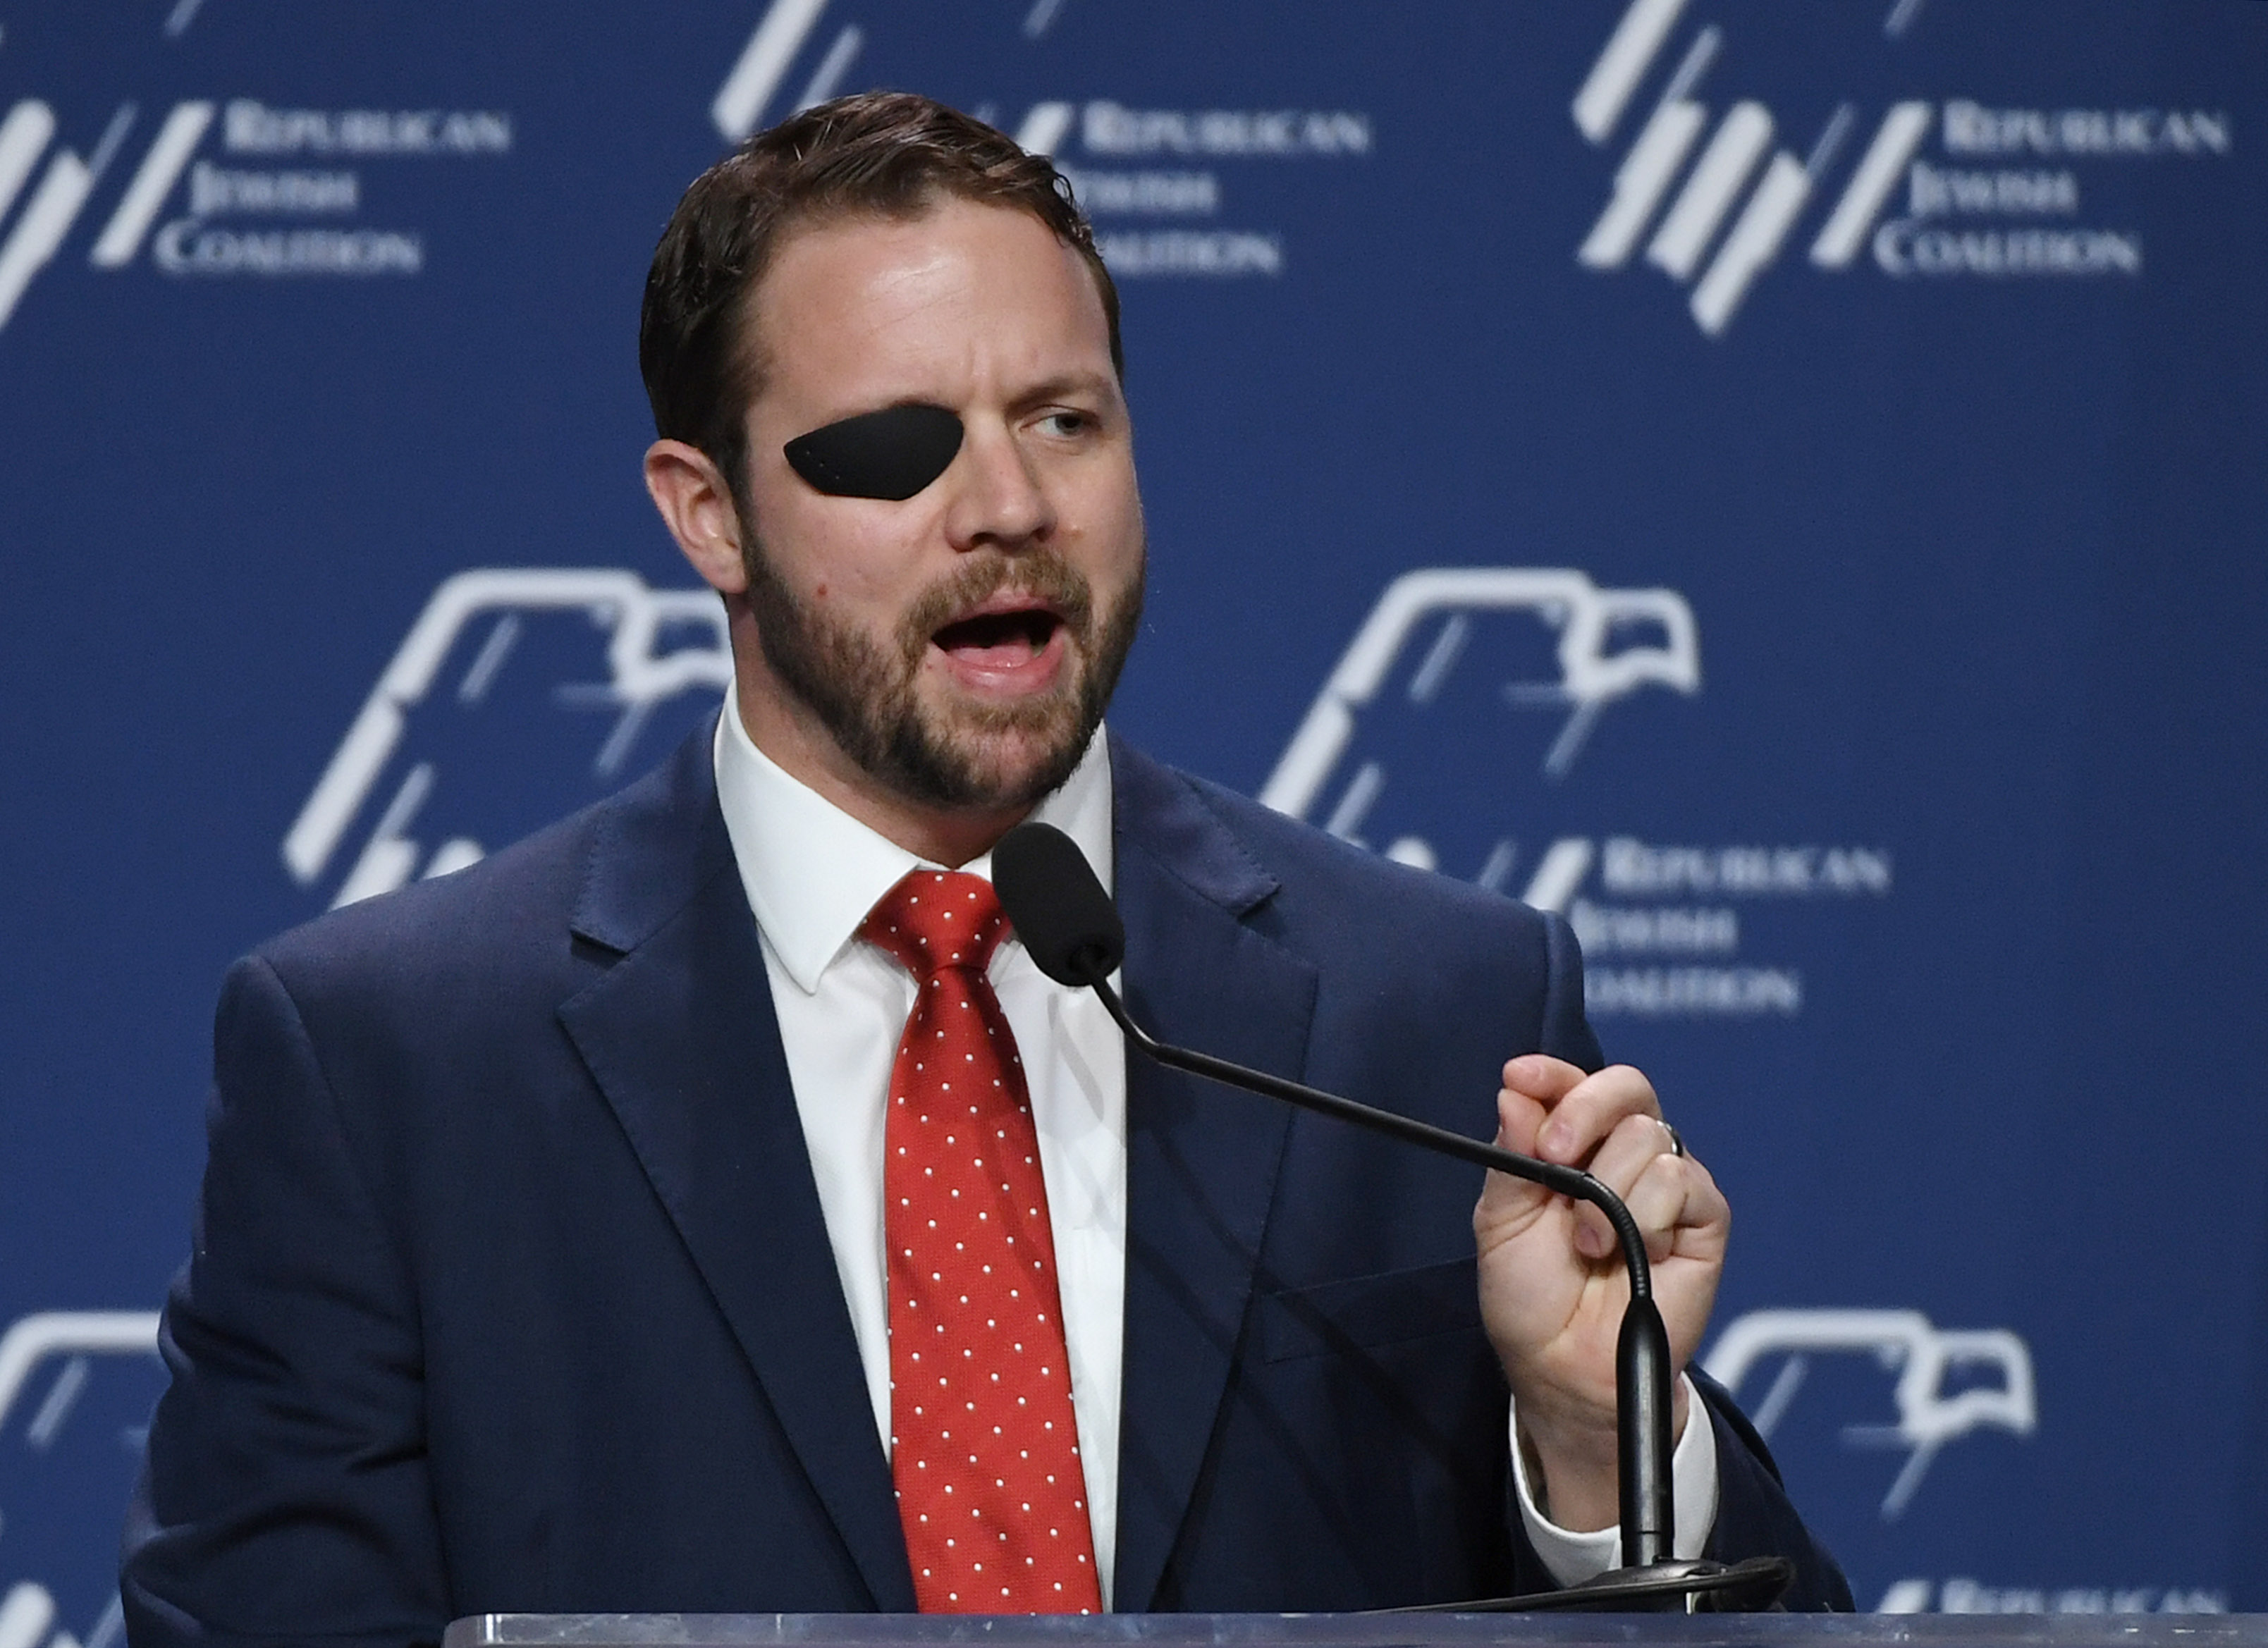 U.S. Rep. Dan Crenshaw speaks at the Republican Jewish Coalition's annual leadership meeting at The Venetian Las Vegas after appearances by U.S. President Donald Trump and Vice President Mike Pence on April 6, 2019 in Las Vegas, Nevada. (Photo by Ethan Miller/Getty Images)